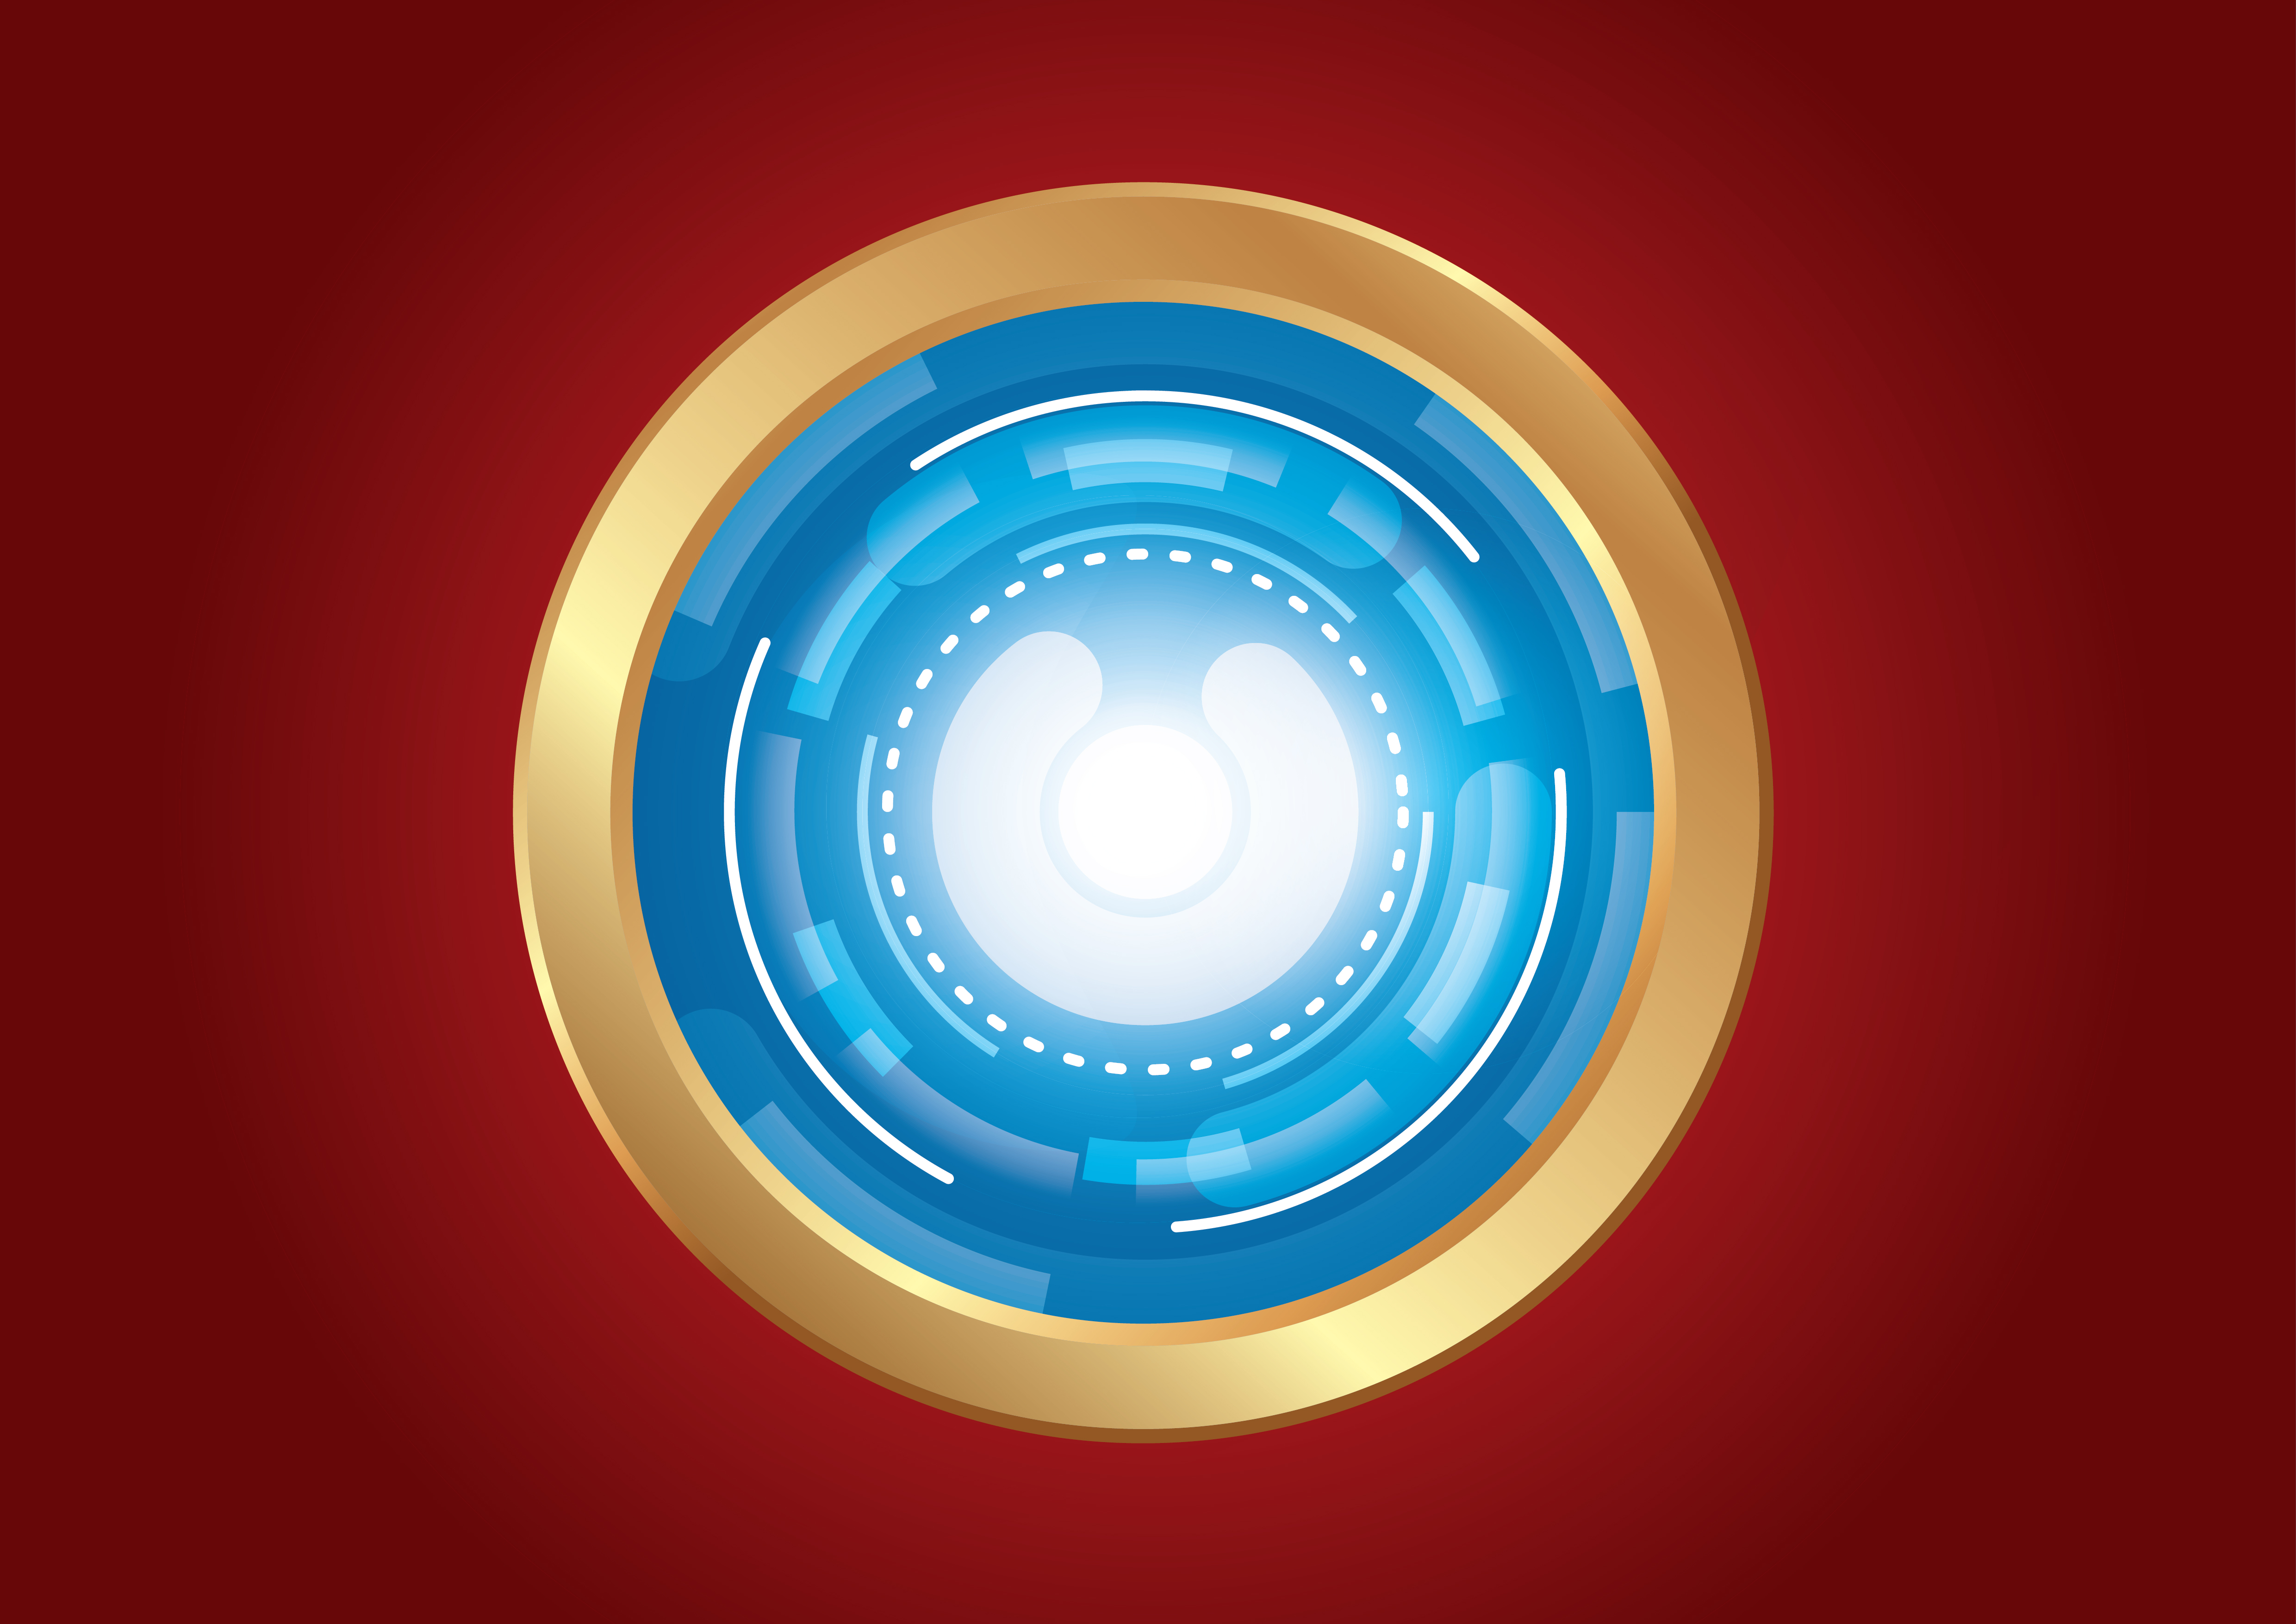 Abstract Technology Background With Light Effect: Technology Circle Effect Light Abstract Background